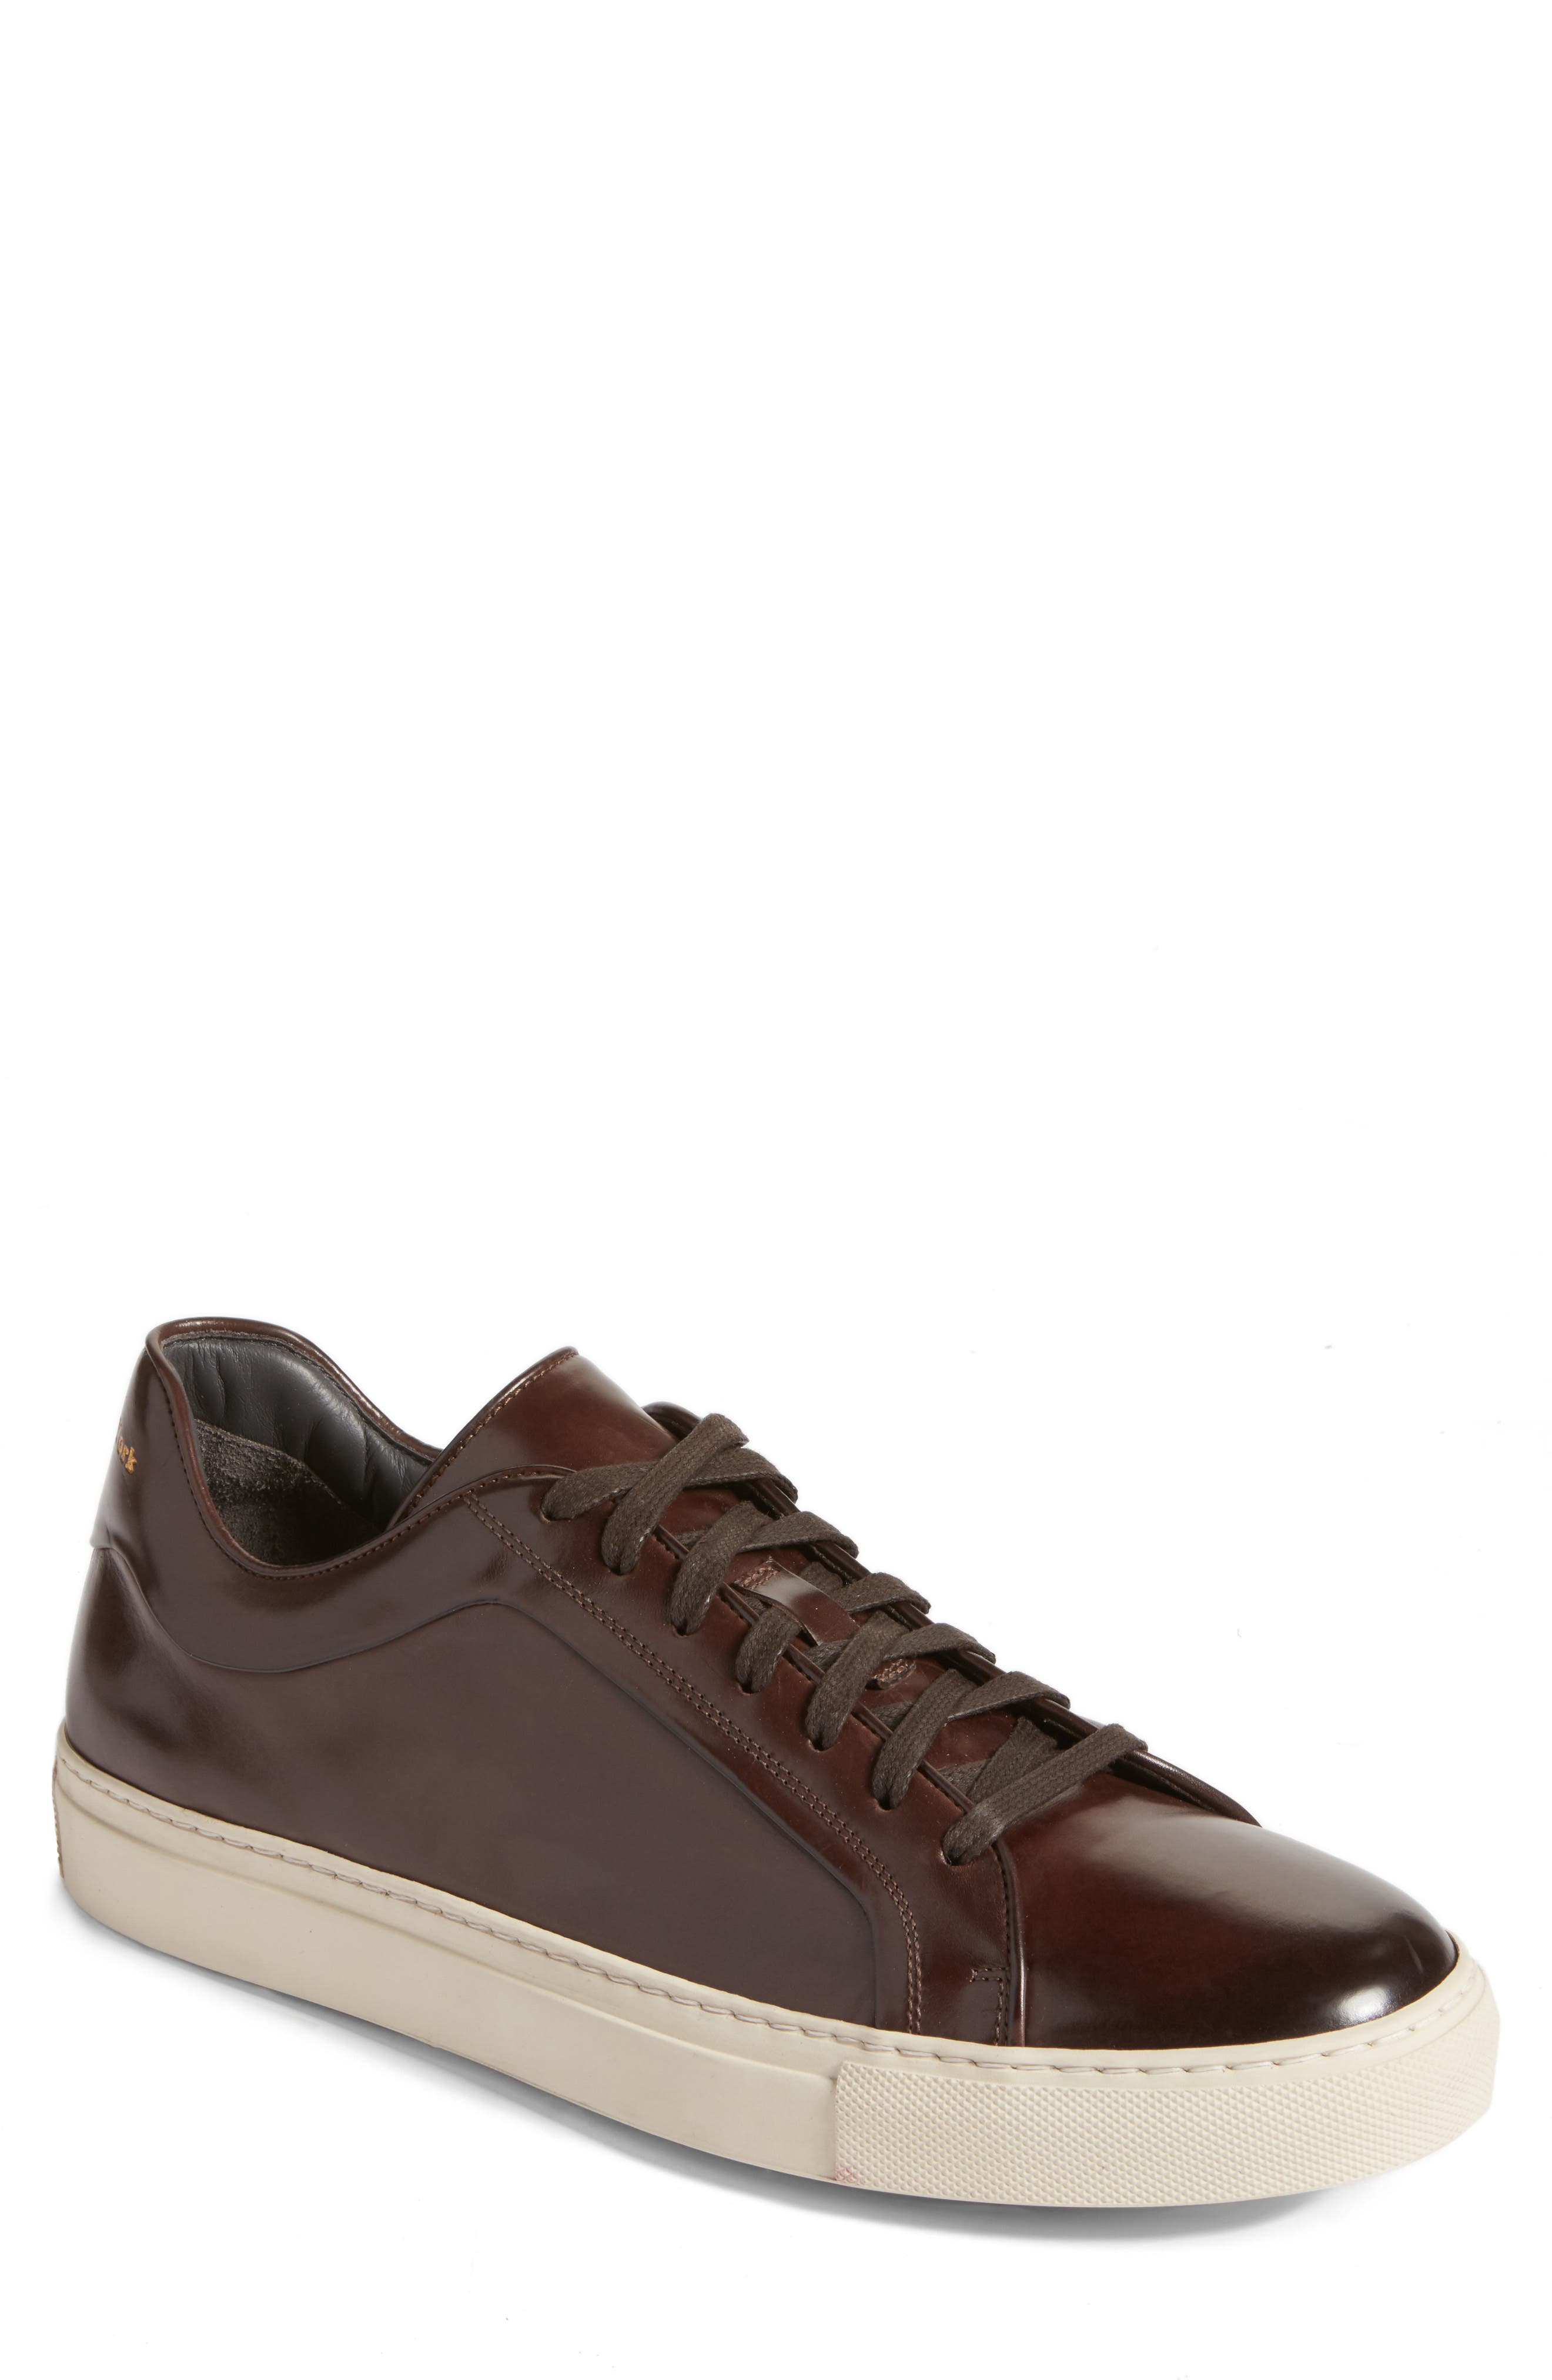 Marshall Sneaker,                         Main,                         color, Moro Leather